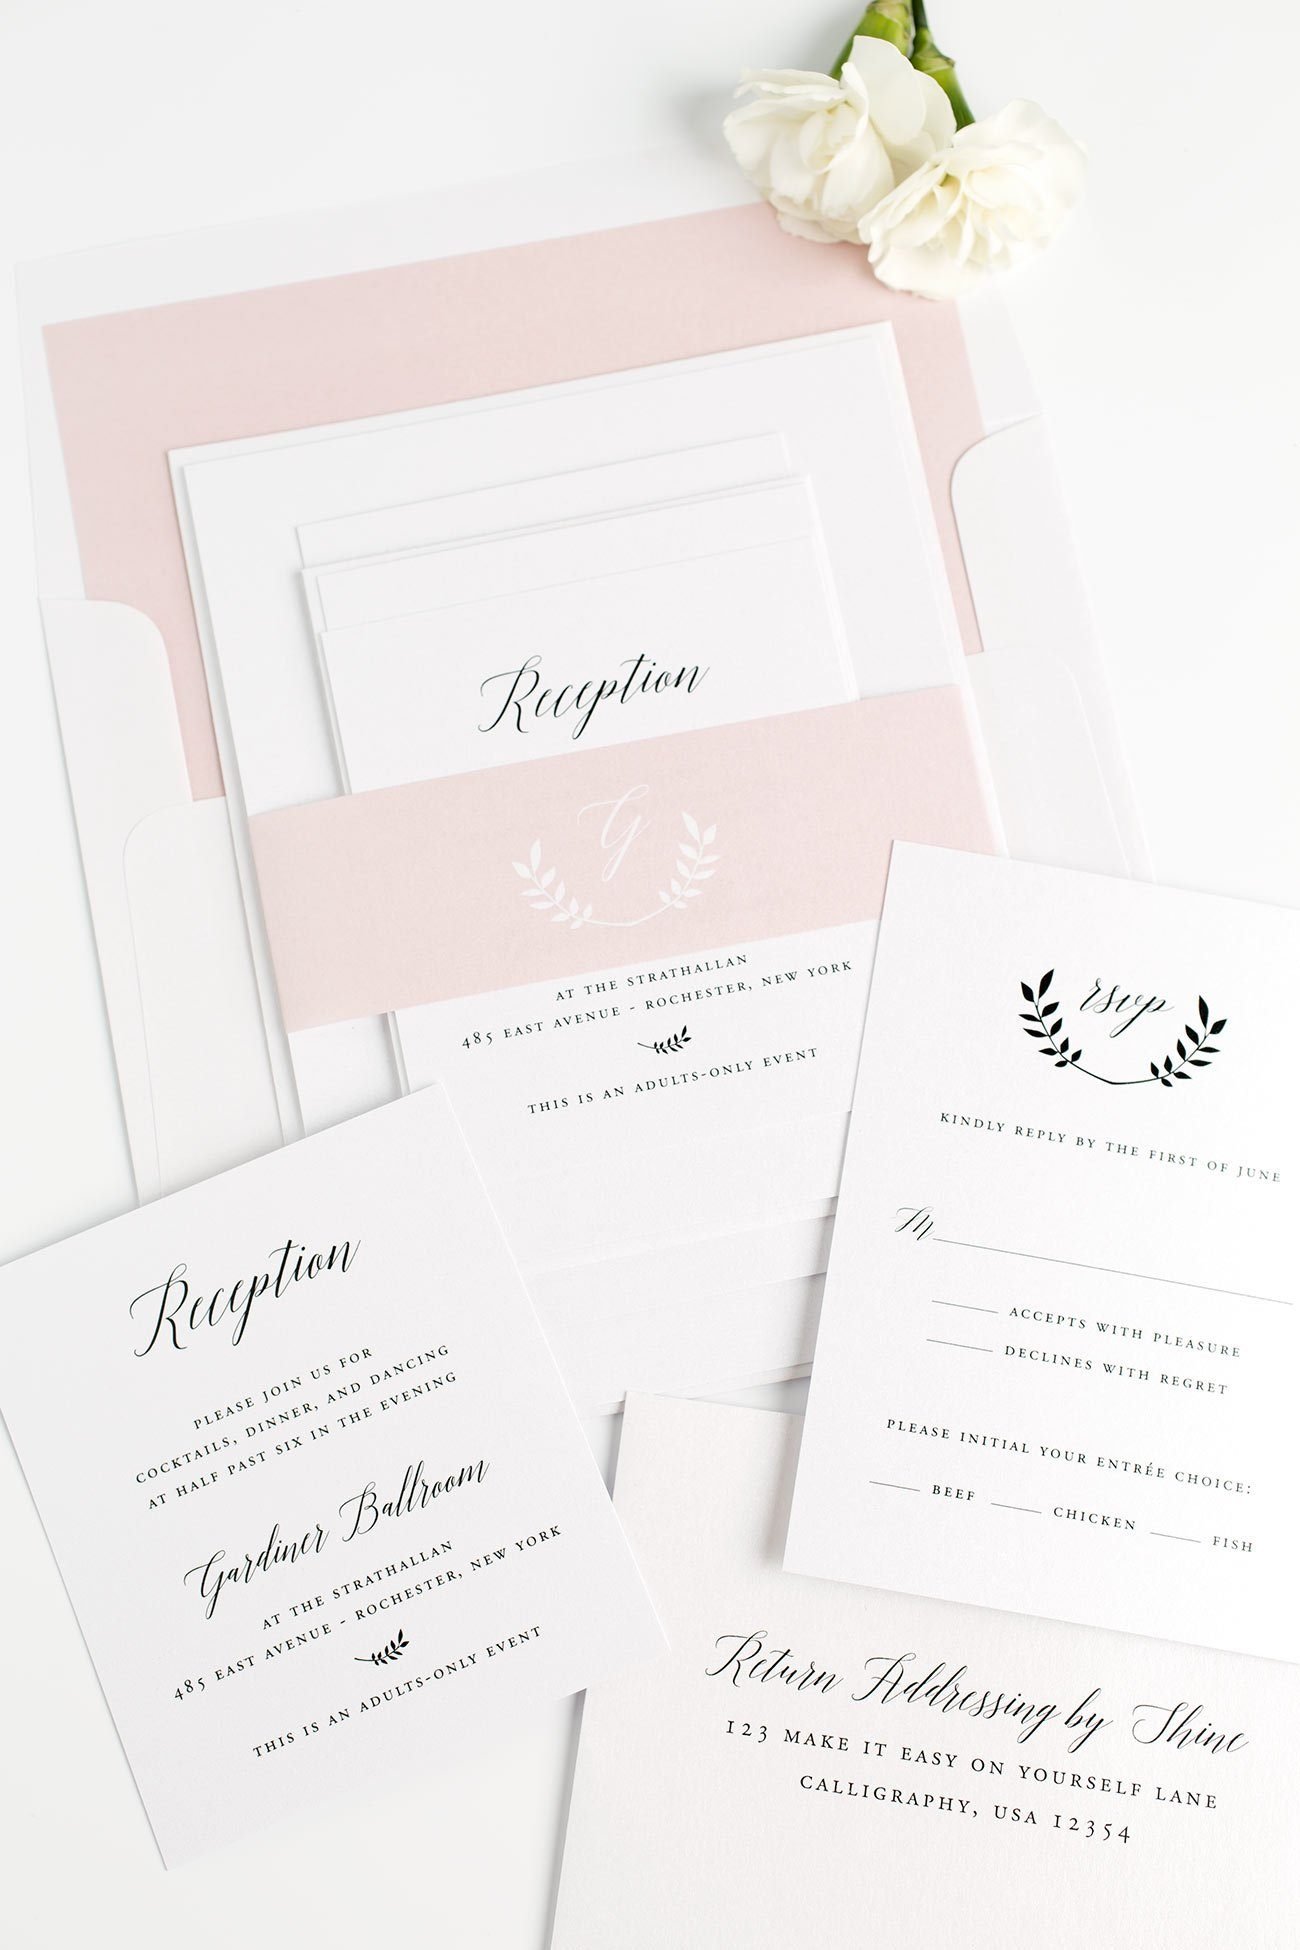 Blush Pink Wedding Invitations with an Olive Branch Wreath Monogram